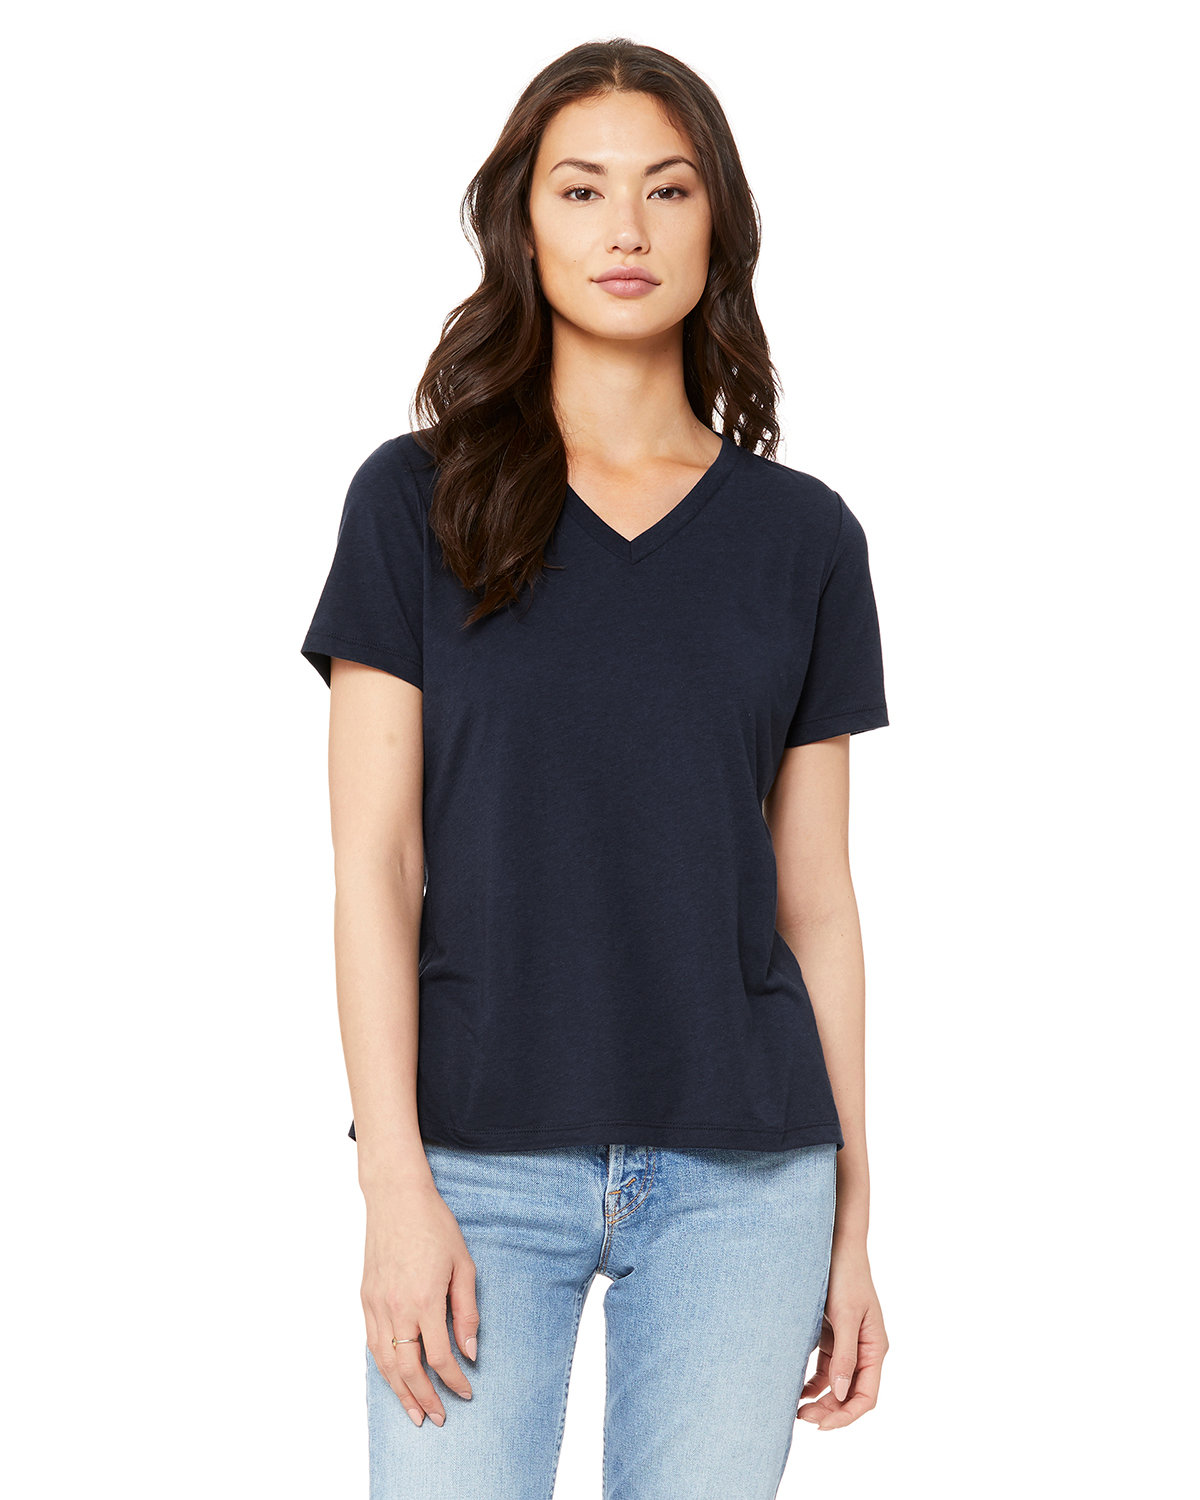 Bella + Canvas Ladies' Relaxed Jersey V-Neck T-Shirt SOLID NVY TRBLND